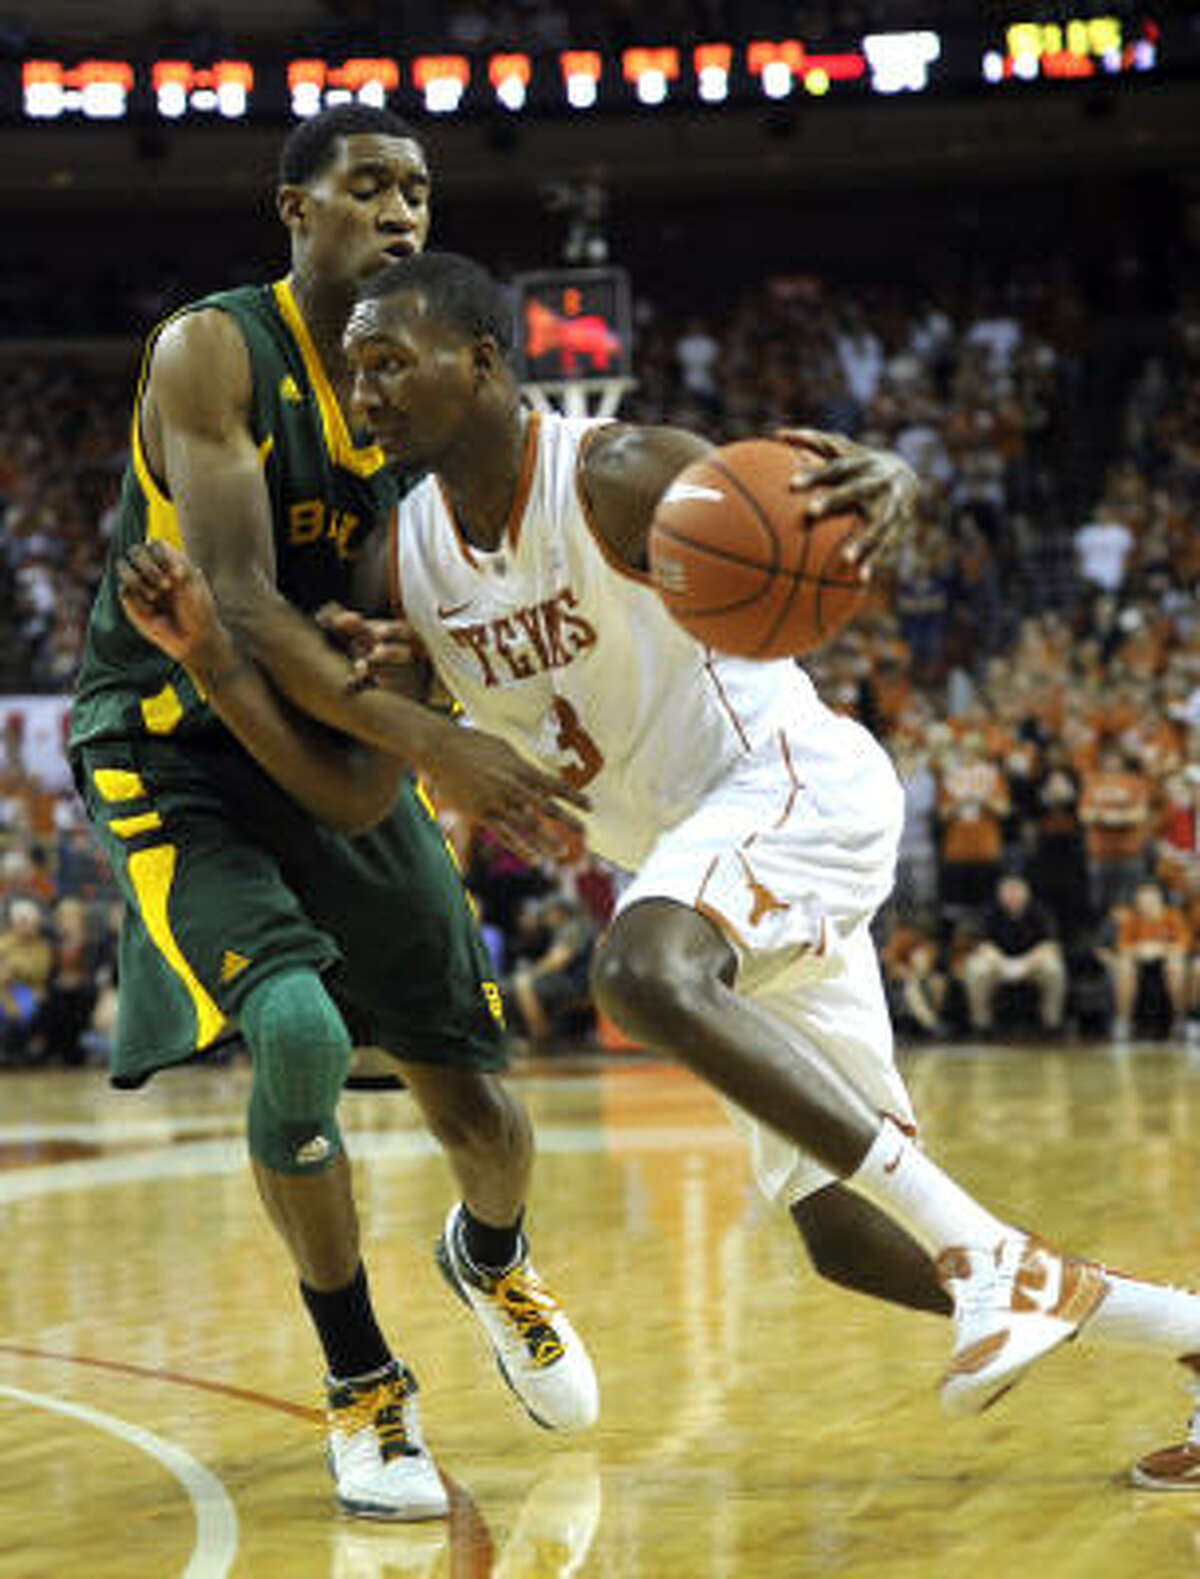 Texas forward Jordan Hamilton (3) drives around Baylor forward Perry Jones III during the first half. Hamilton scored 17 points.